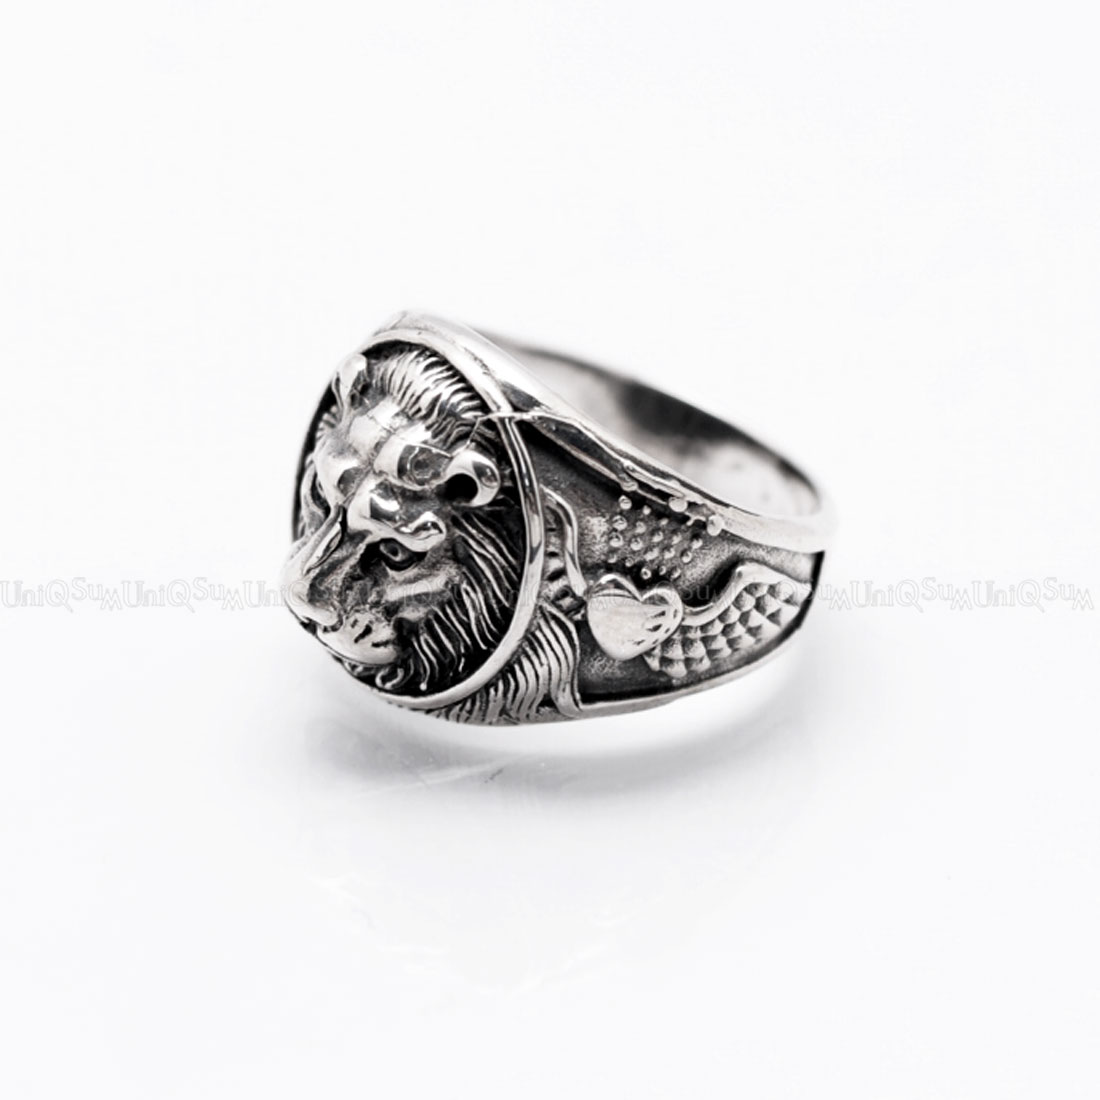 men quality skull top punk mentitanium man jewelry steel product head rings stainless ring size dual male